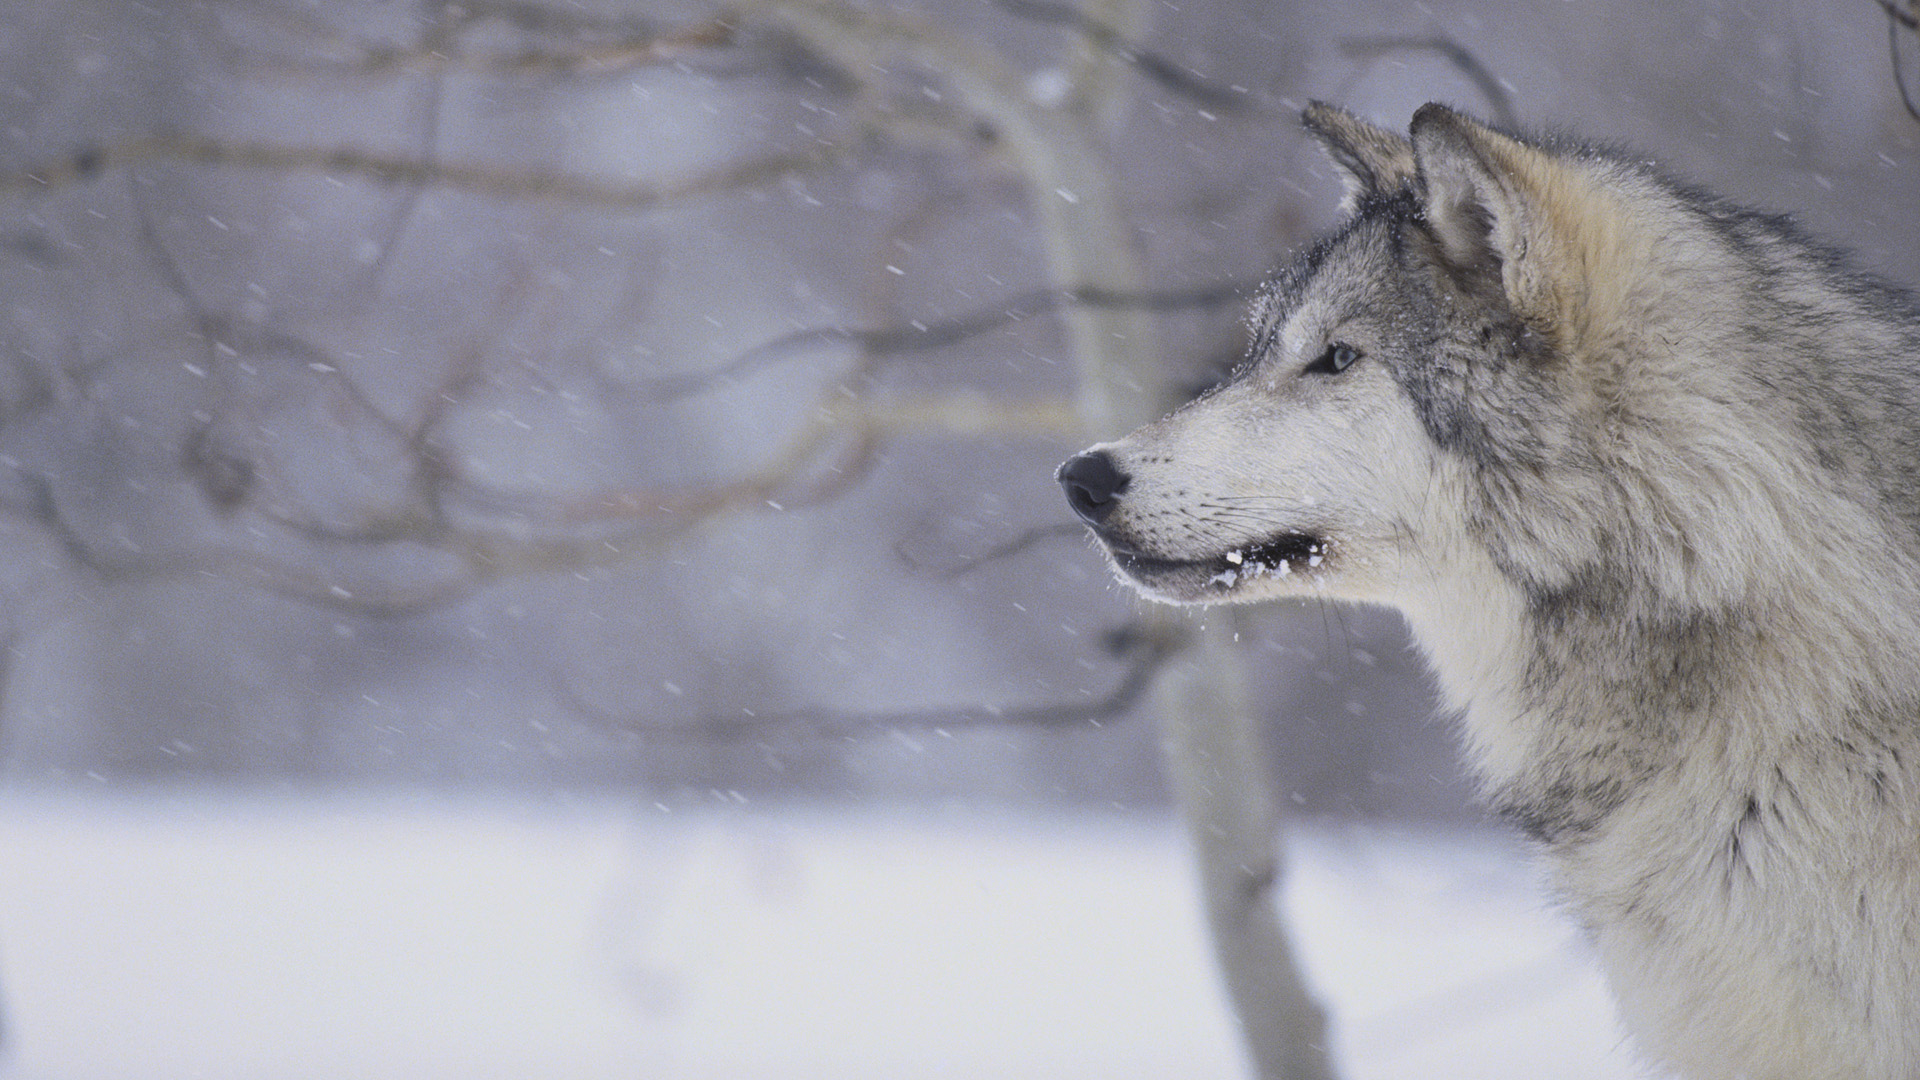 Gray wolf in snow tweet hd wallpapers animals photo gray wolf hd 1920x1080